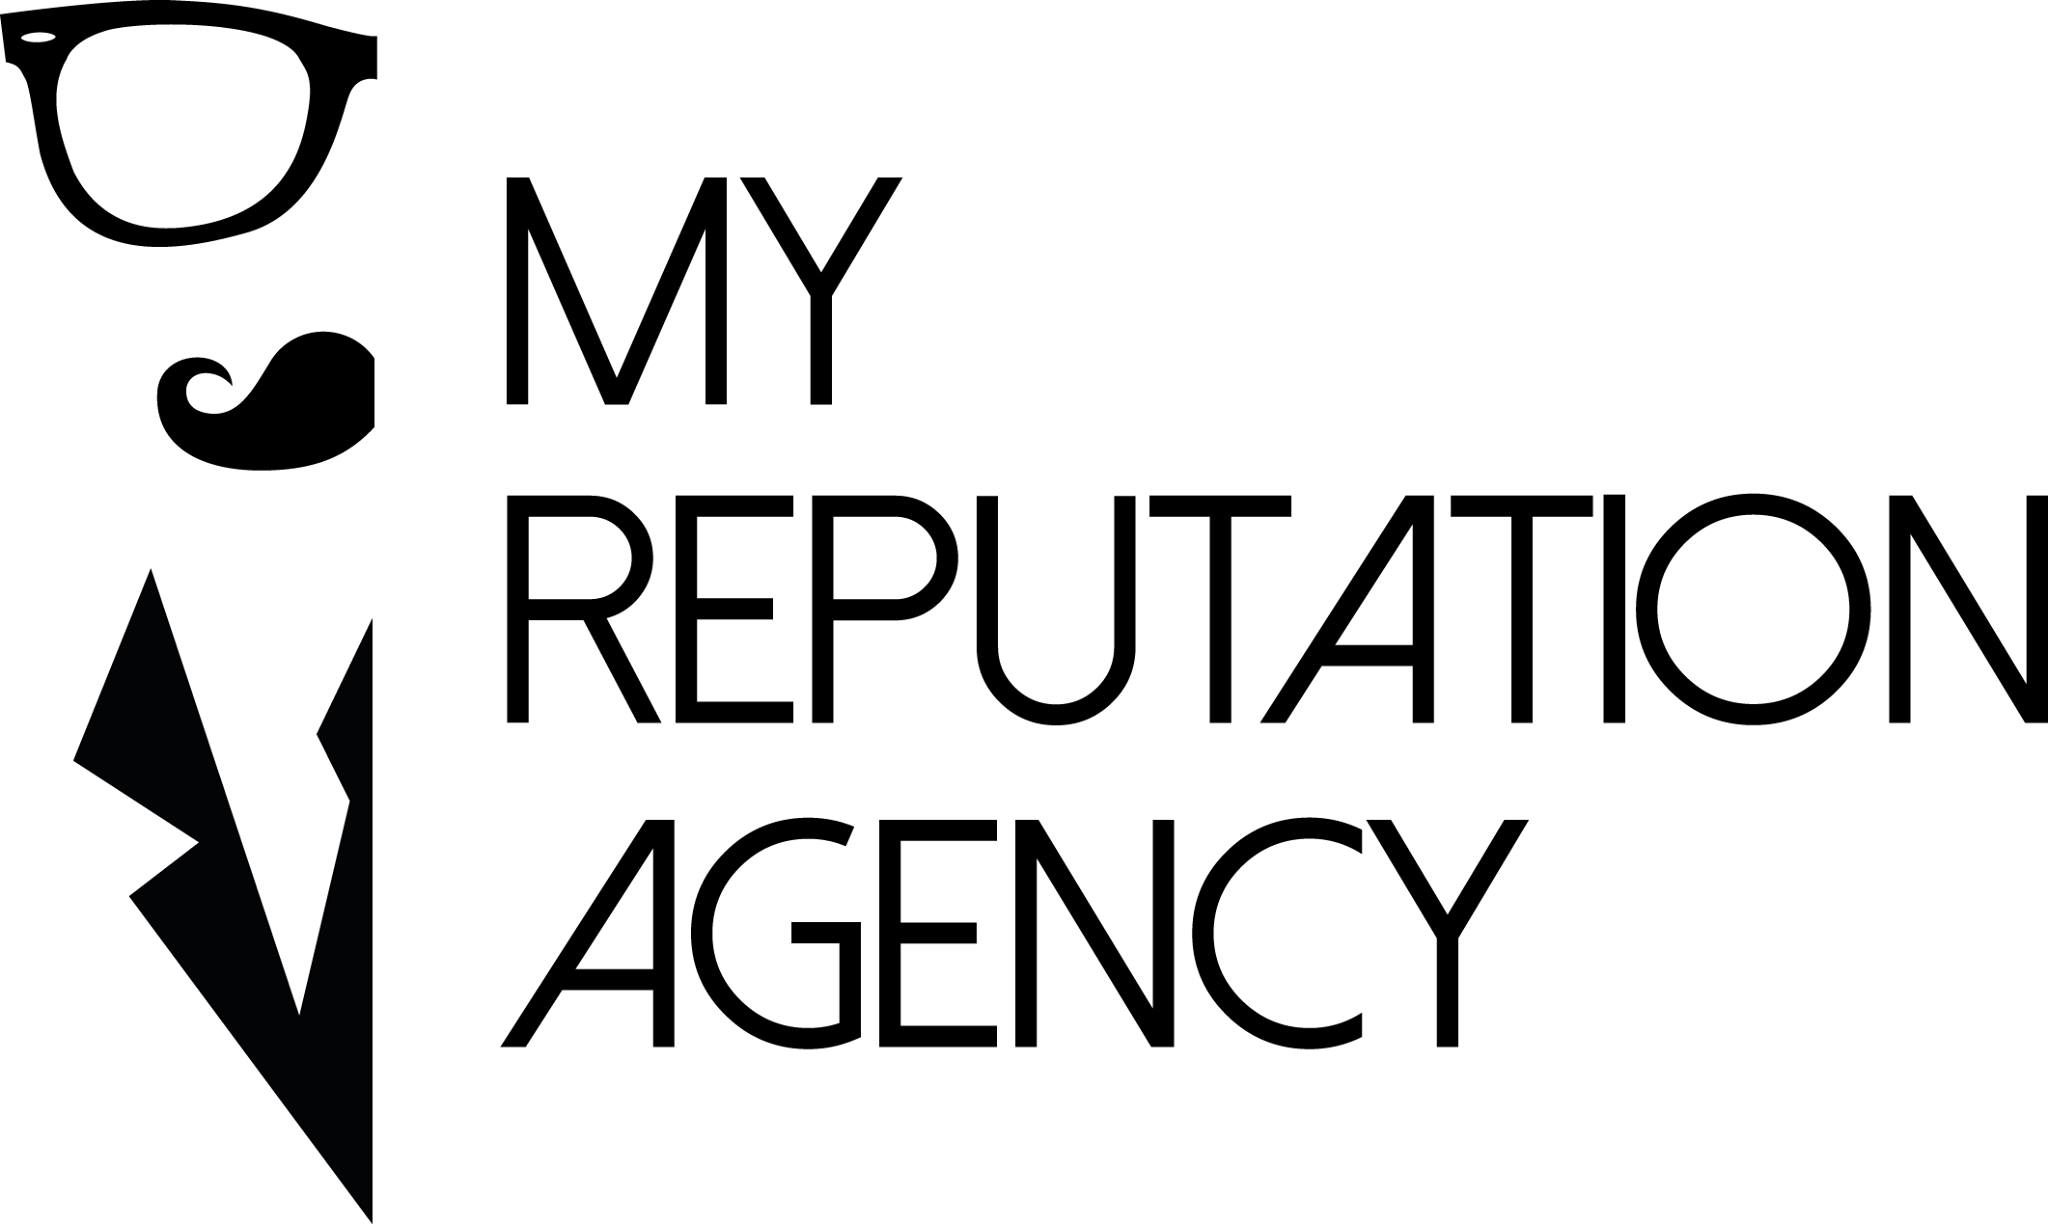 My Reputation Agency